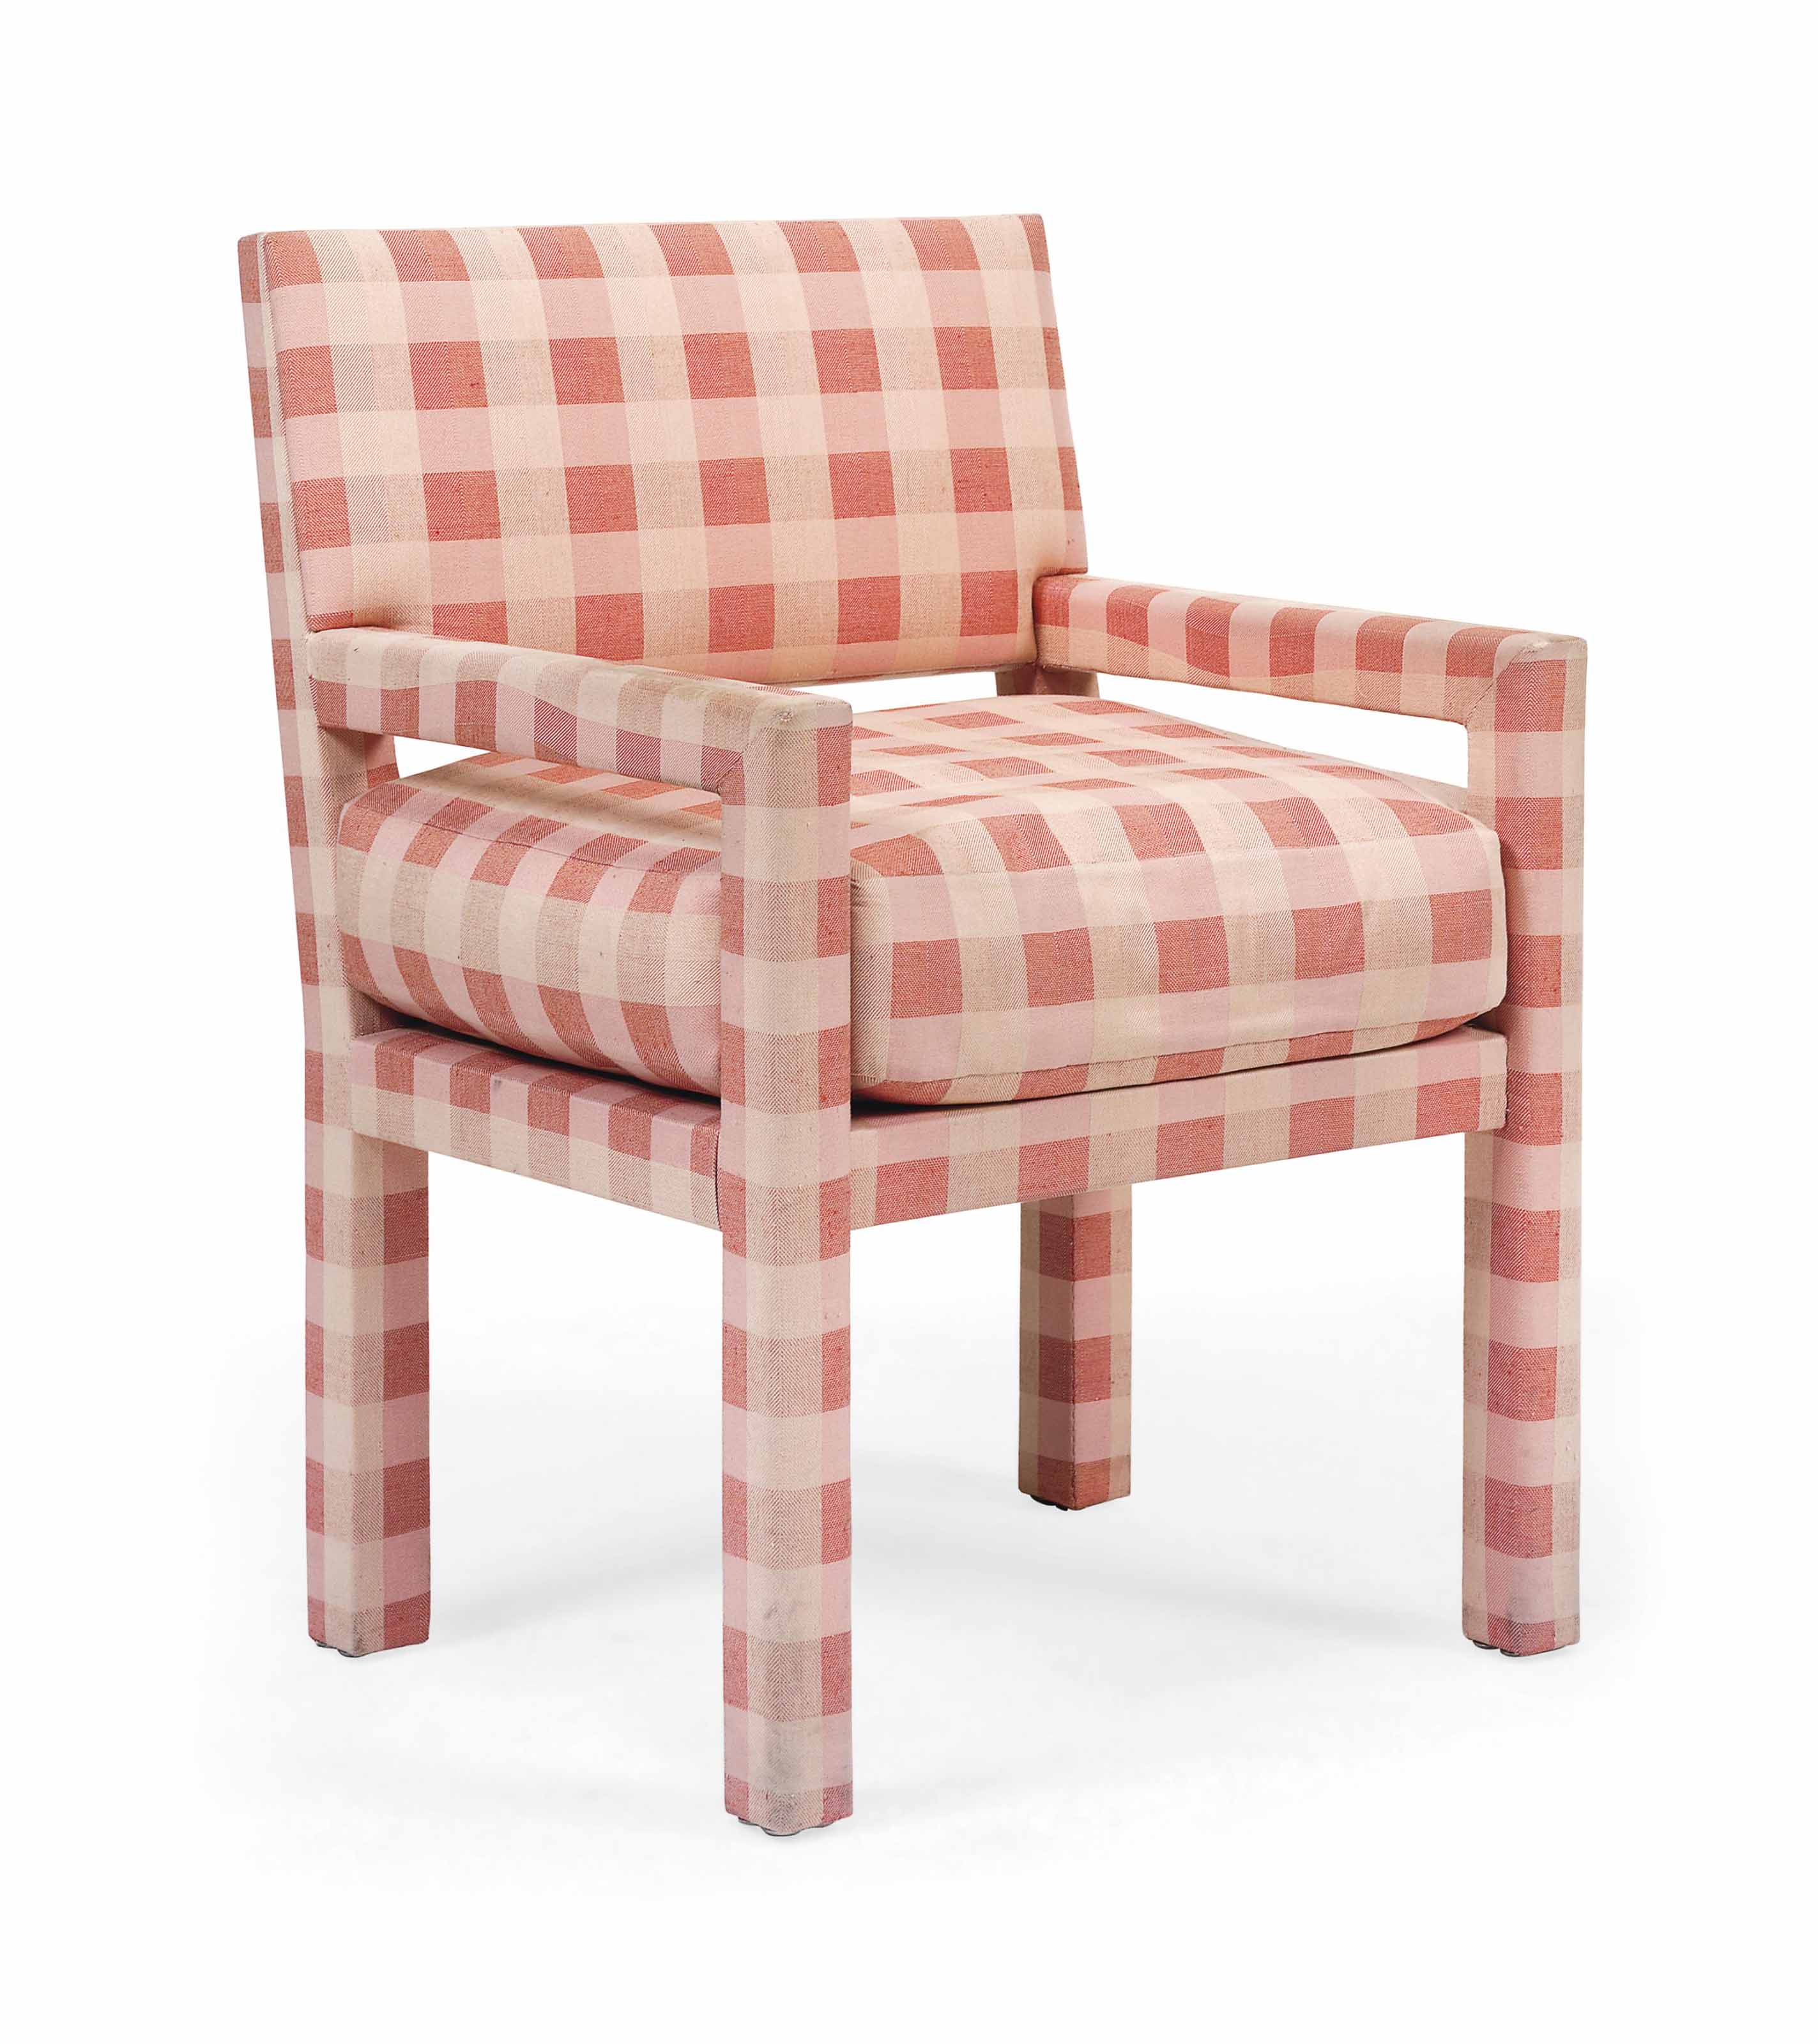 A DAVID HICKS CHECKED-COTTON UPHOLSTERED ARMCHAIR